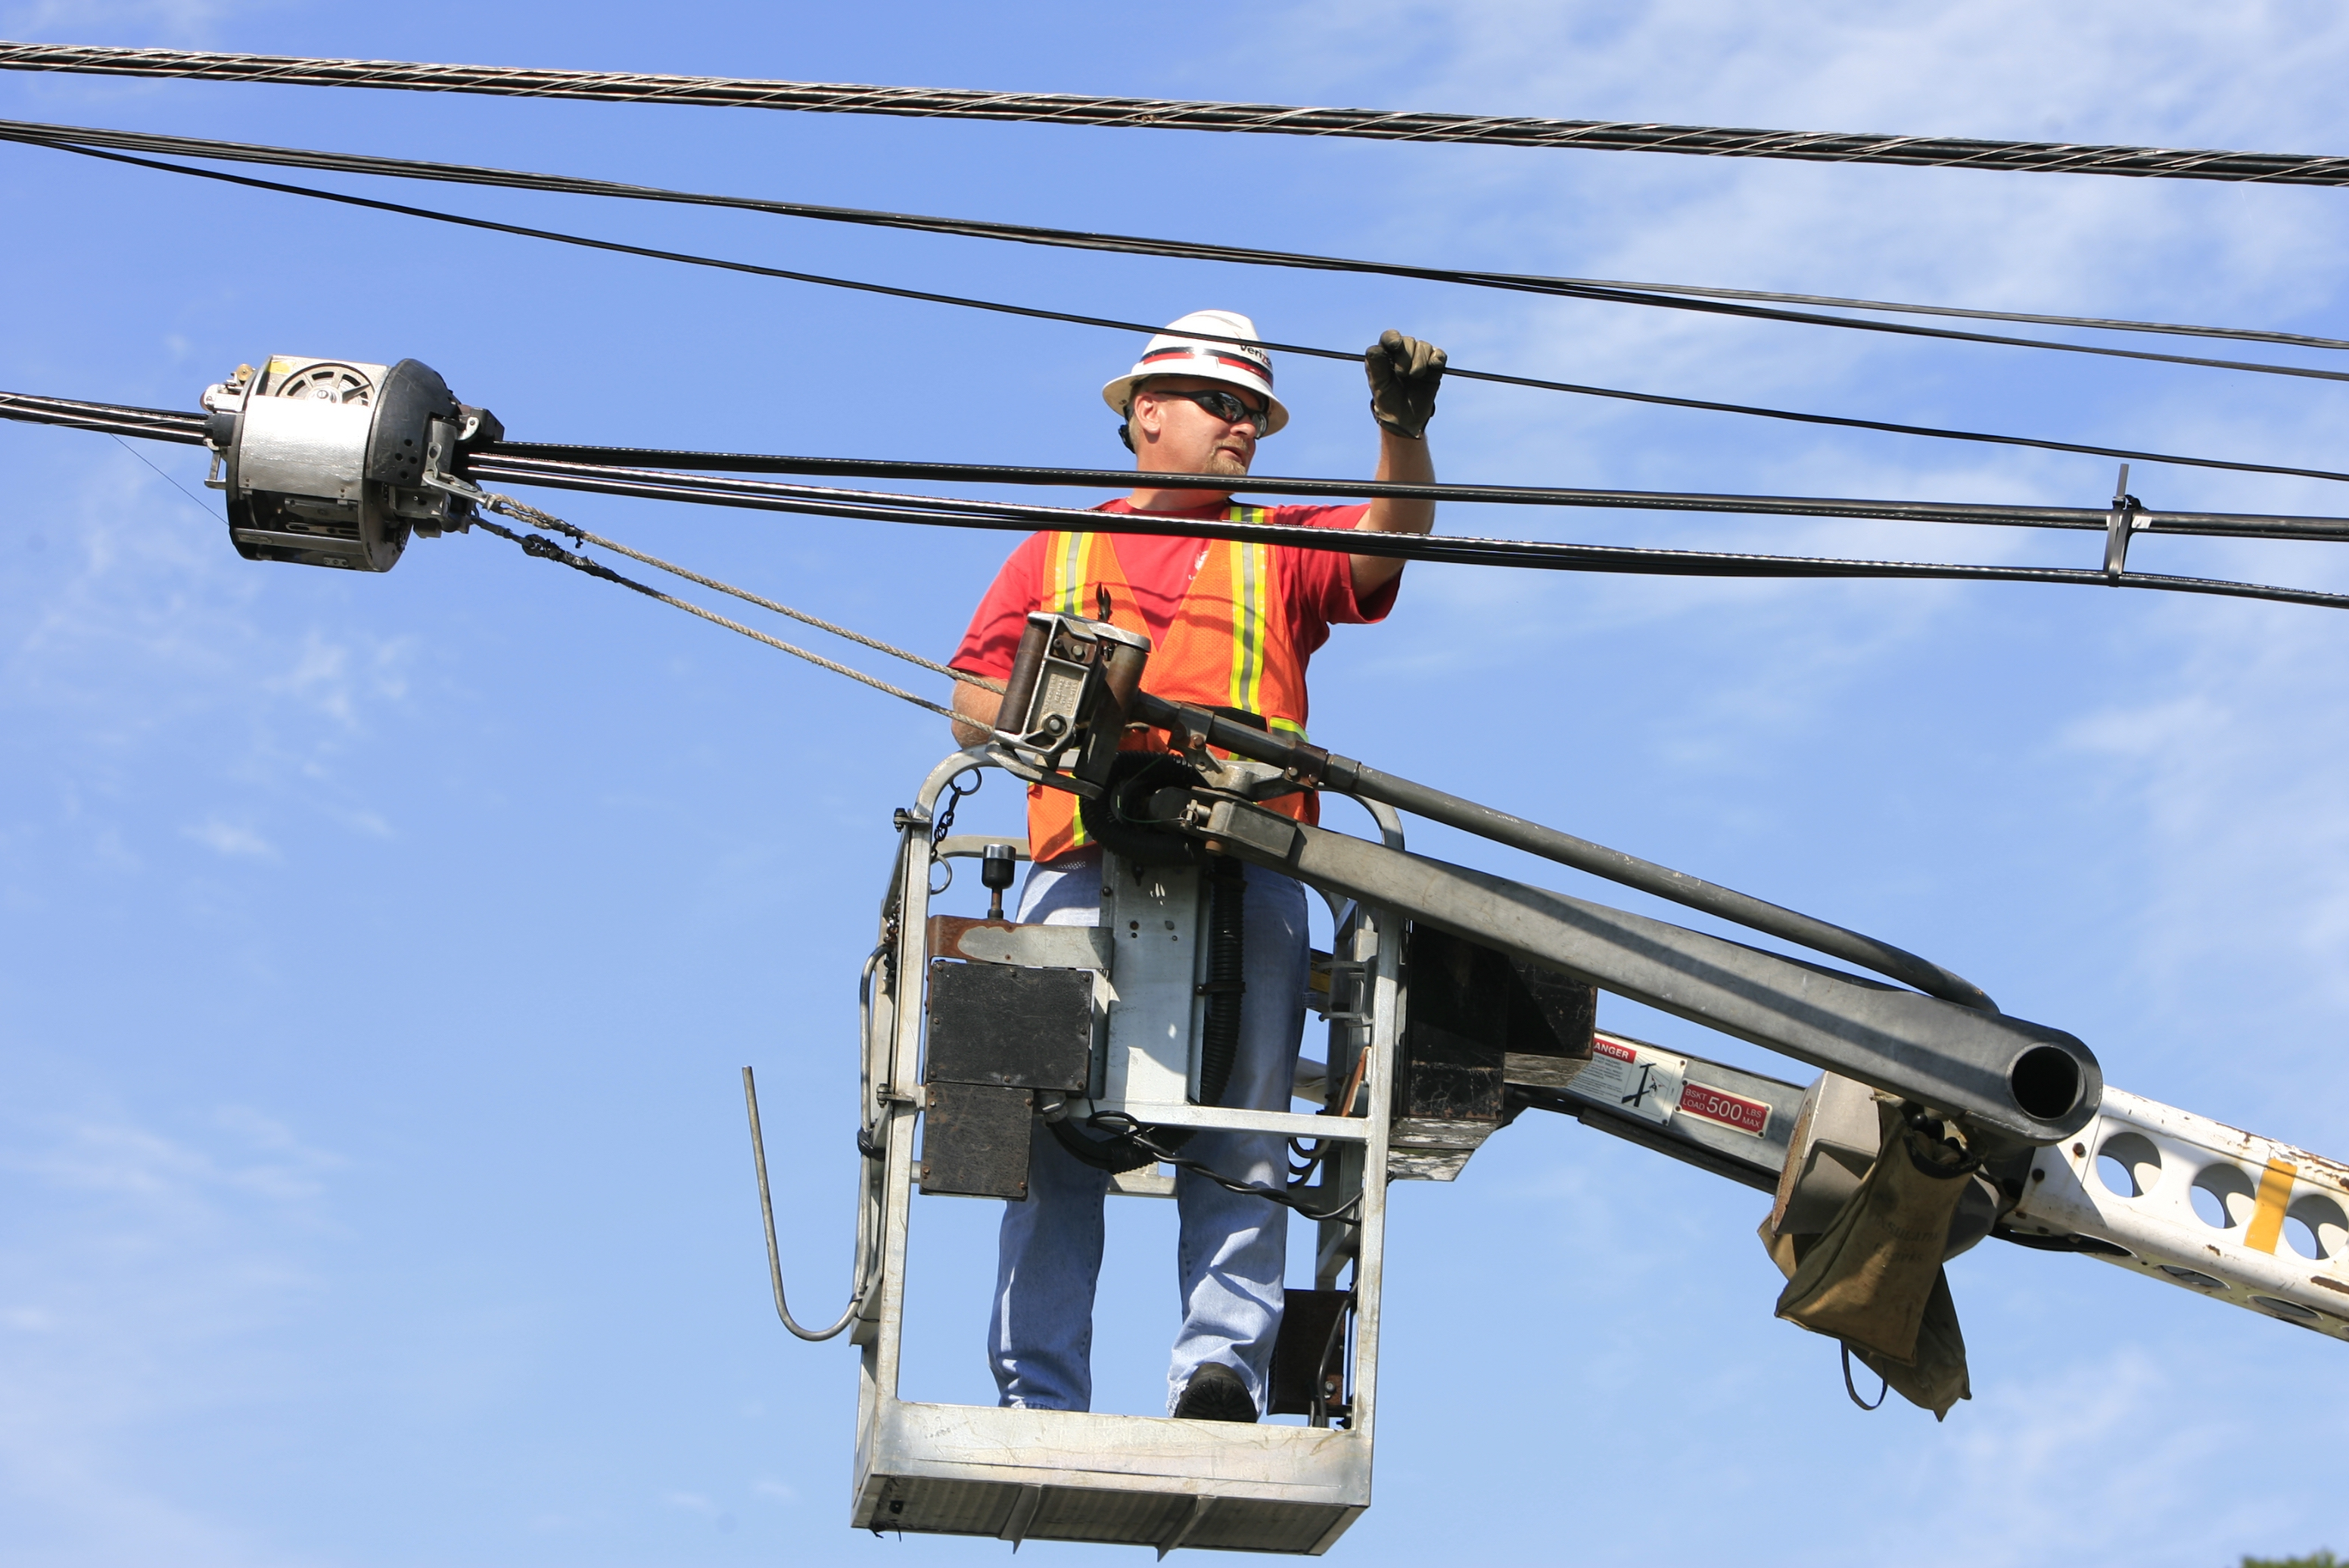 Verizon employees such as those who connect fiber-optic cables are affected by negotiations between the company and the CWA and IBEW as the prospect of a walkout is looming. The current contract expired Aug. 1, and talks have been going on since June.